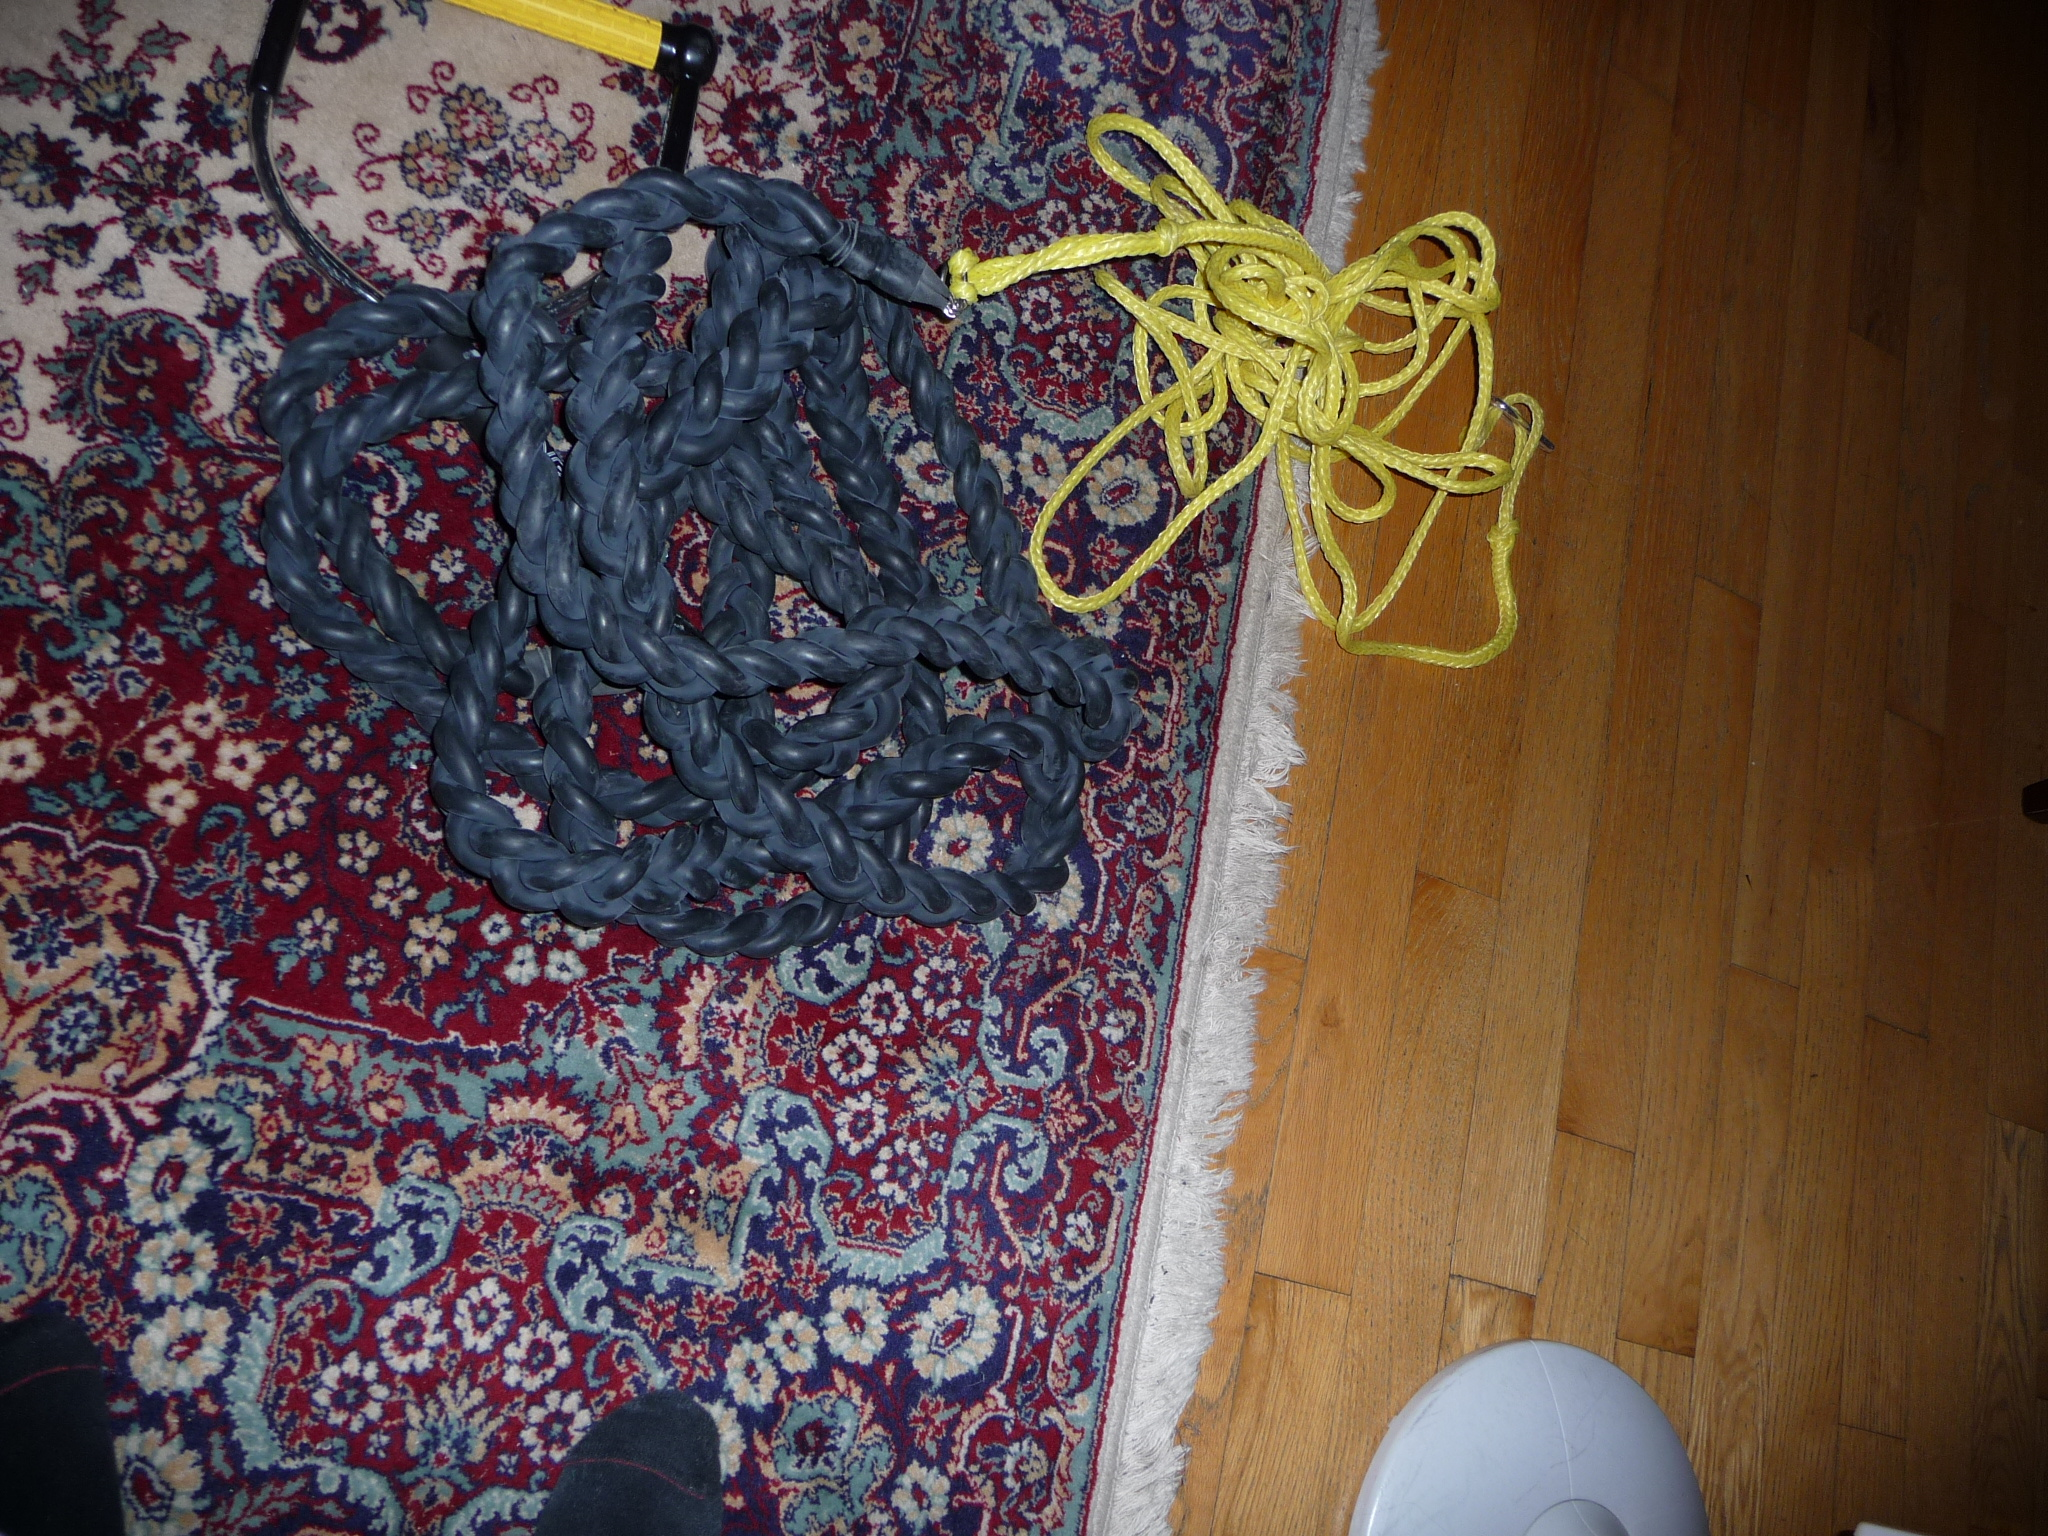 @*@*@*@*@BANSHEE BUNGEE@*@*@*@*@(FOR SALE)